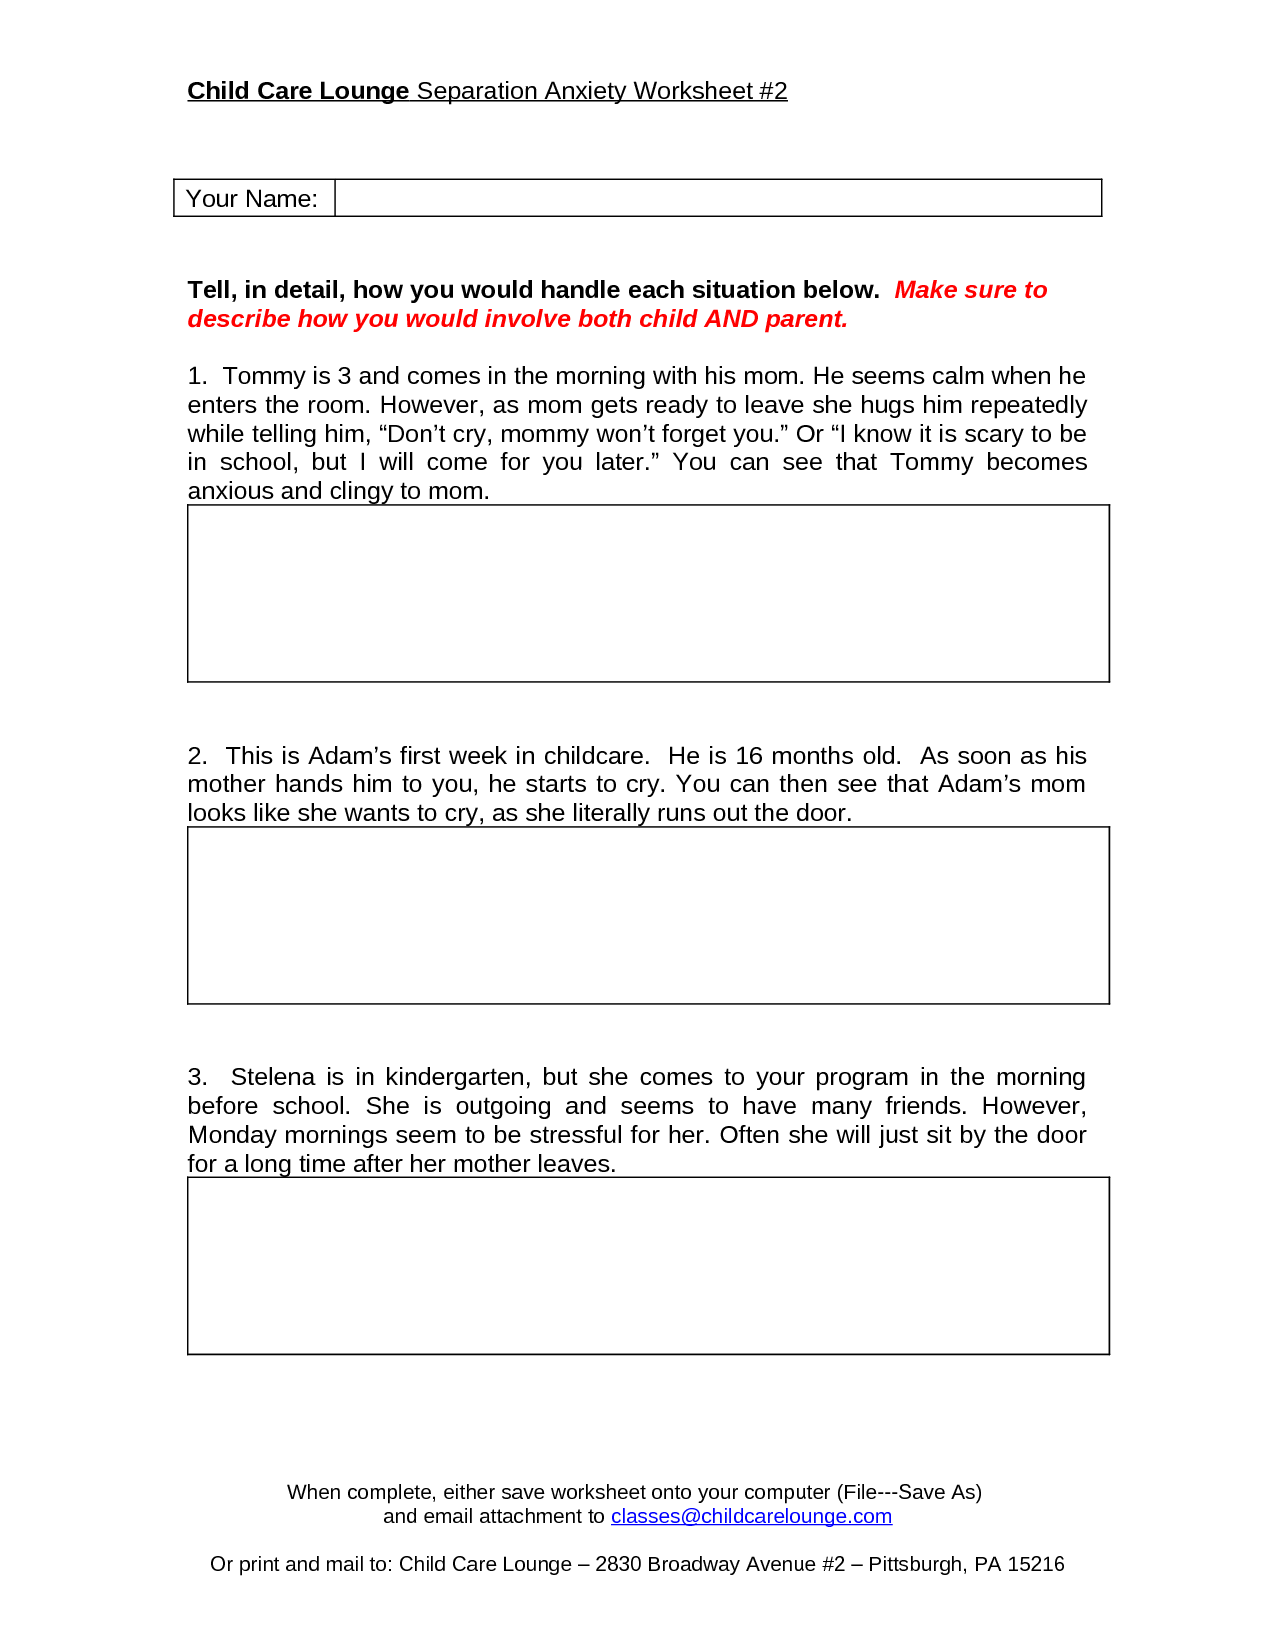 Worksheet On Anxiety